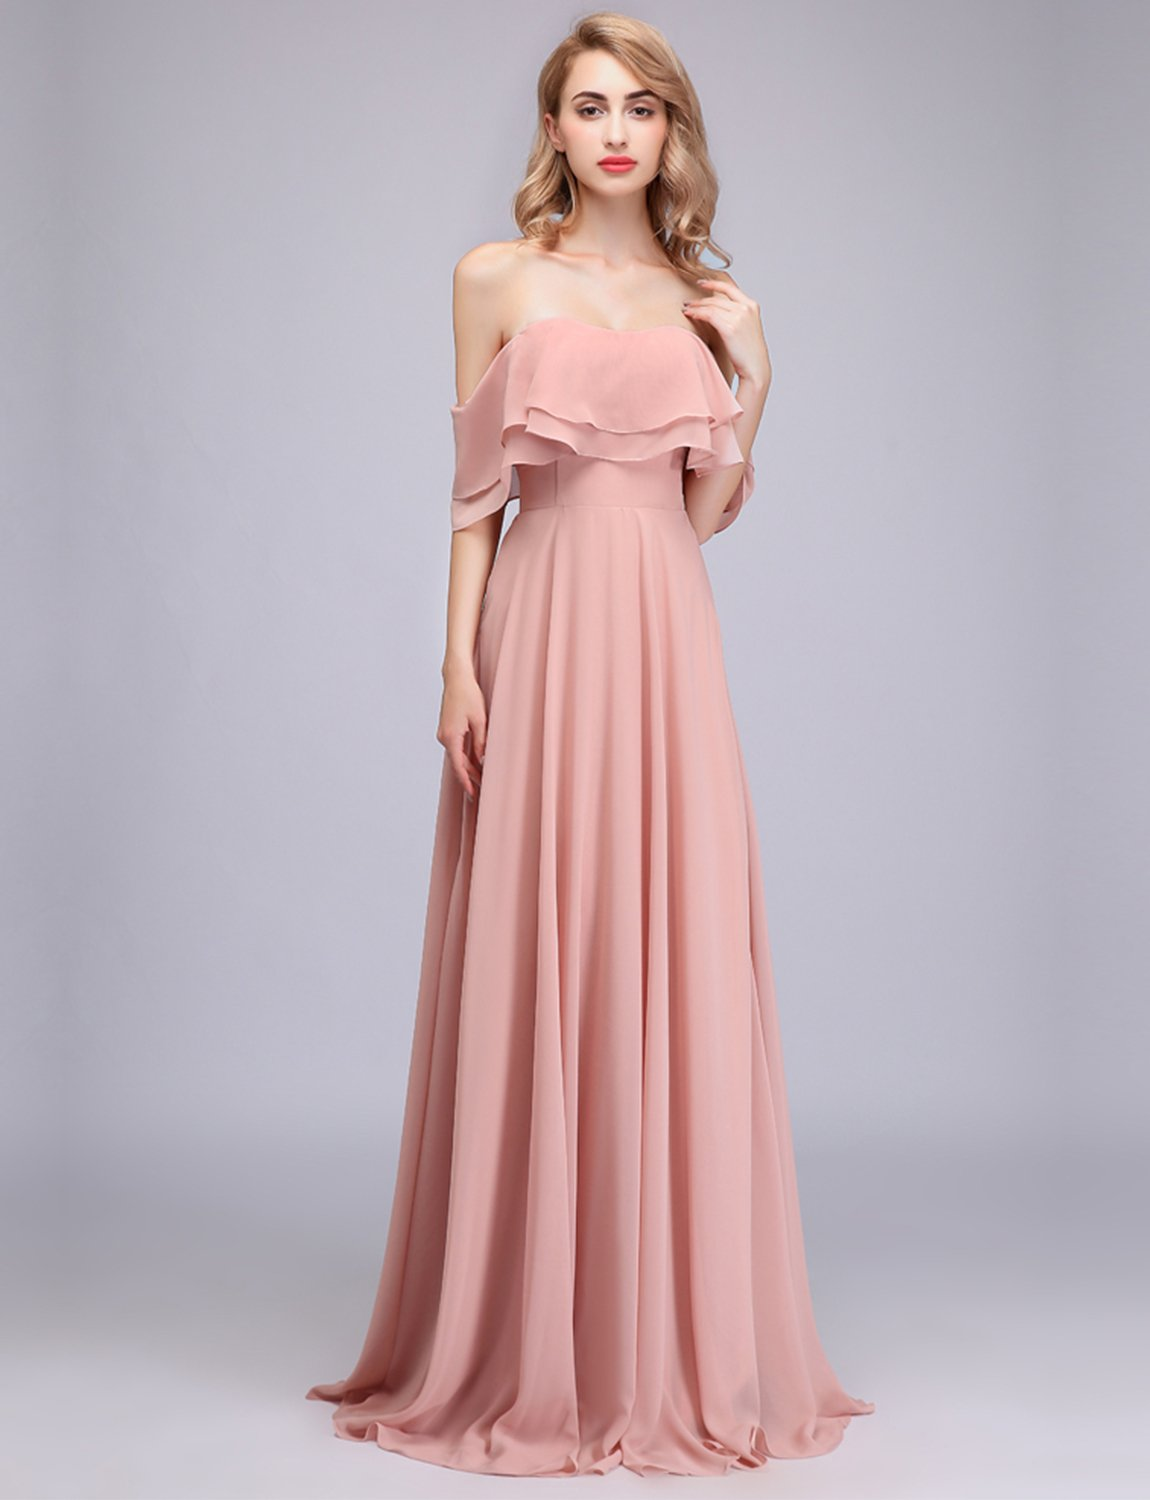 160ba639a286 CLOTHKNOW Strapless Chiffon Bridesmaid Dresses Long with Shoulder Ruffles  for Women Girls to Wedding Party Gowns larger image